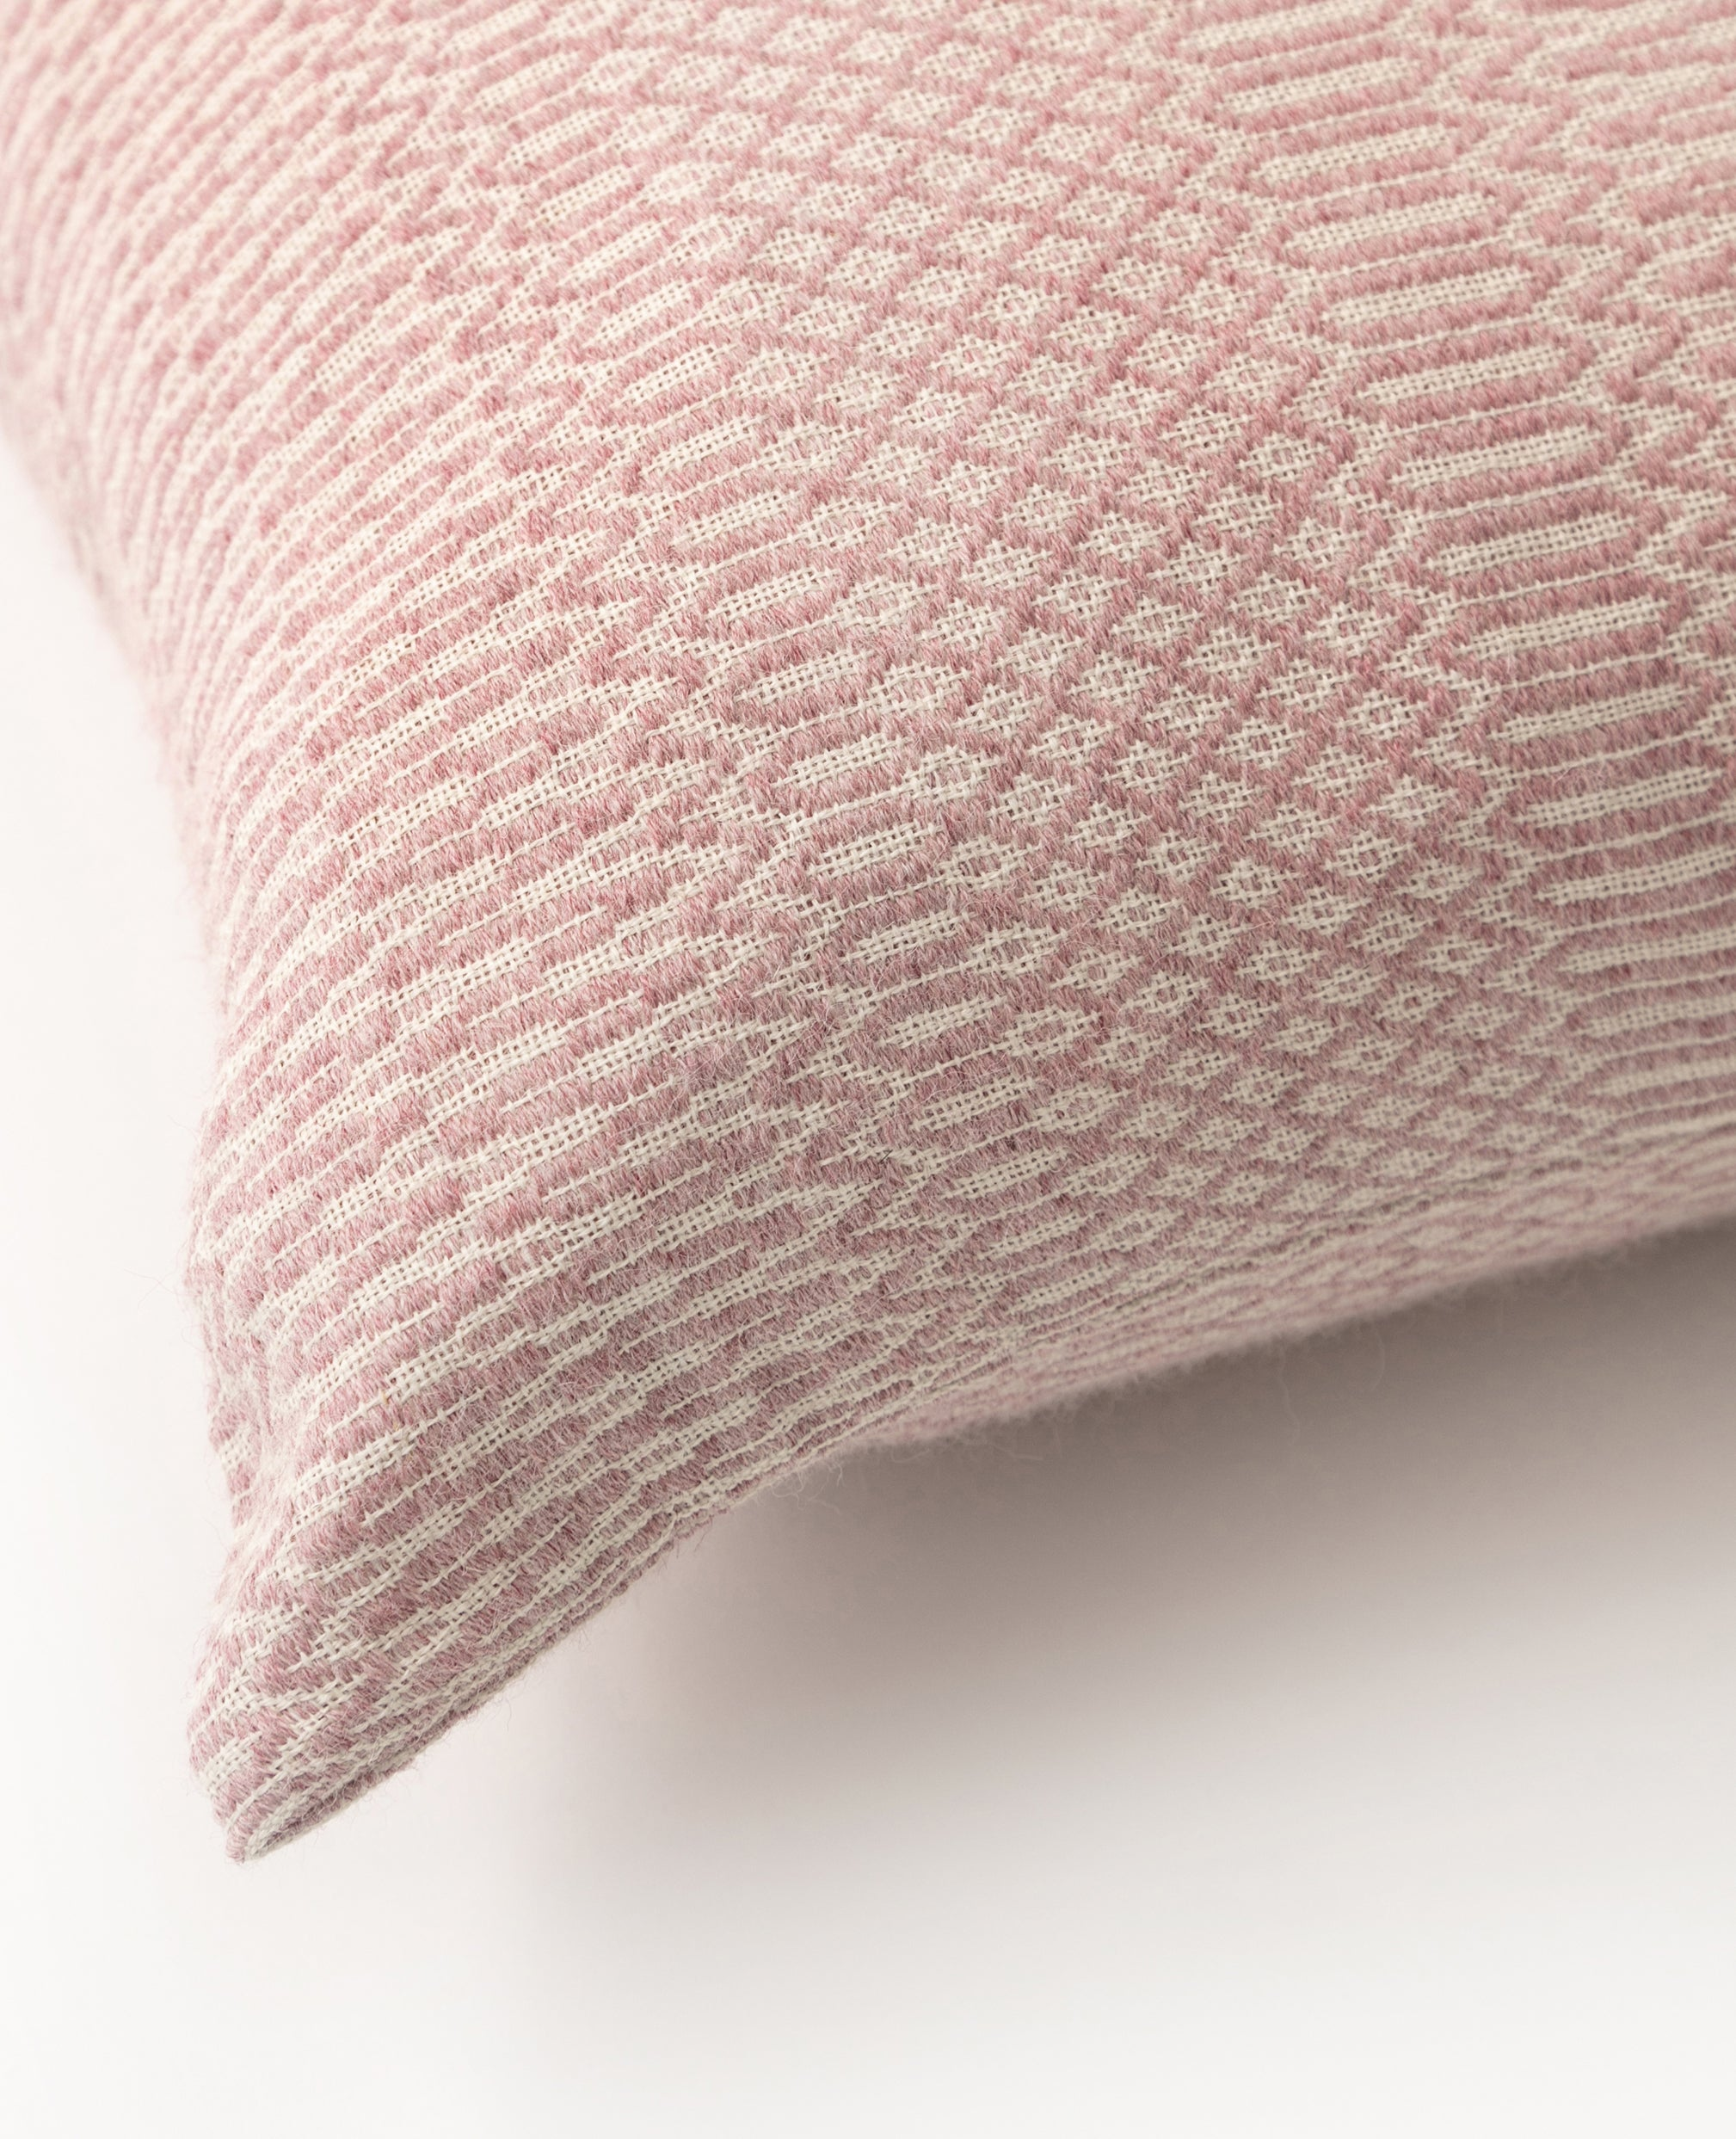 Siana overshot cushion detail